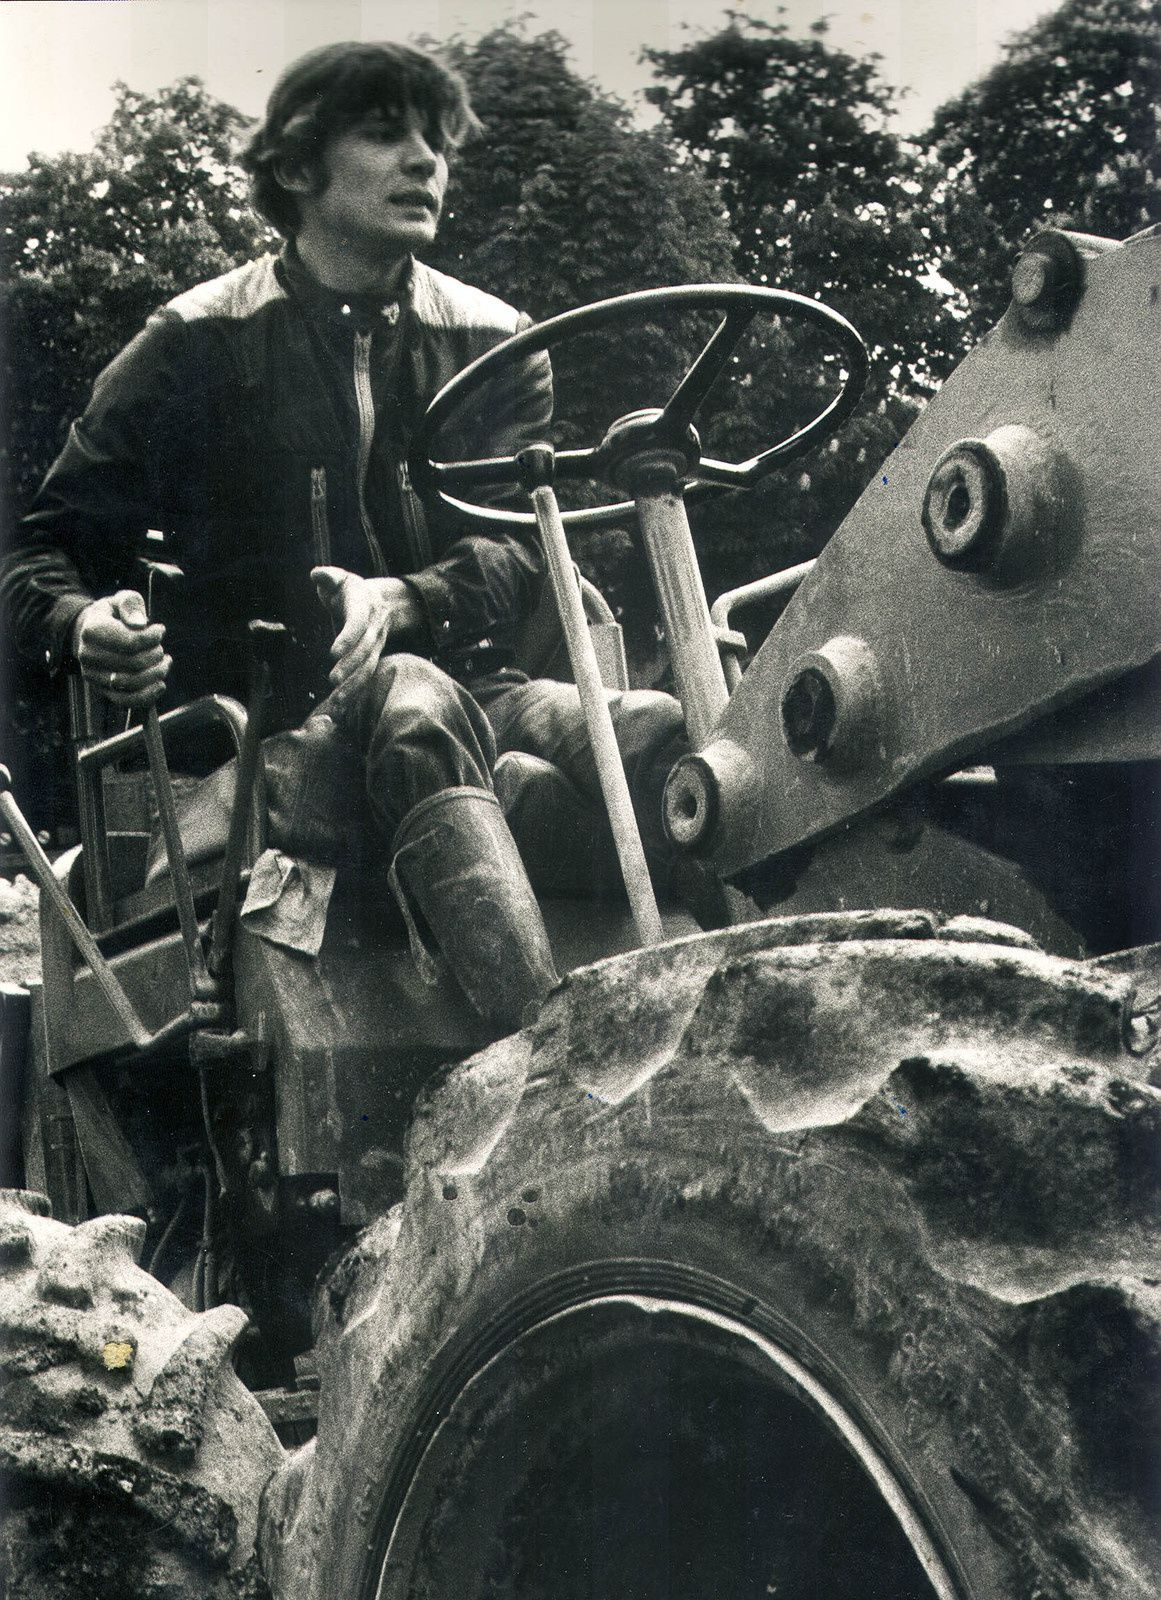 Guy-Claude au tracteur, 1976